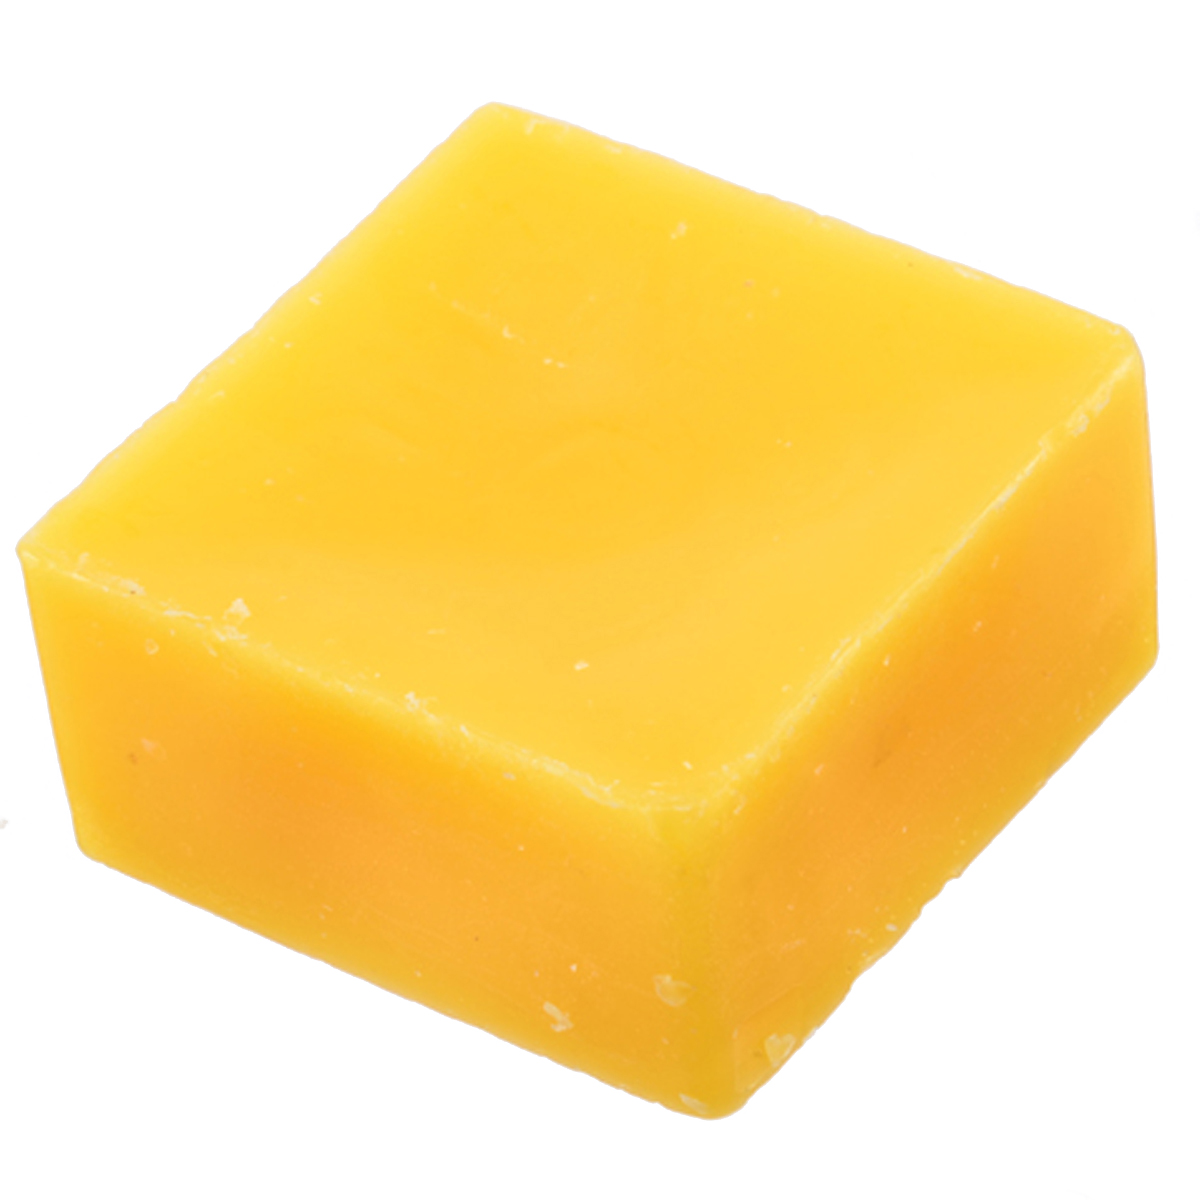 Hot Sale 50g Organic Beeswax Cosmetic Grade Filtered Natural Pure Bees Wax Bars 1.76oz For Jewelry Leather Industry Beeswax